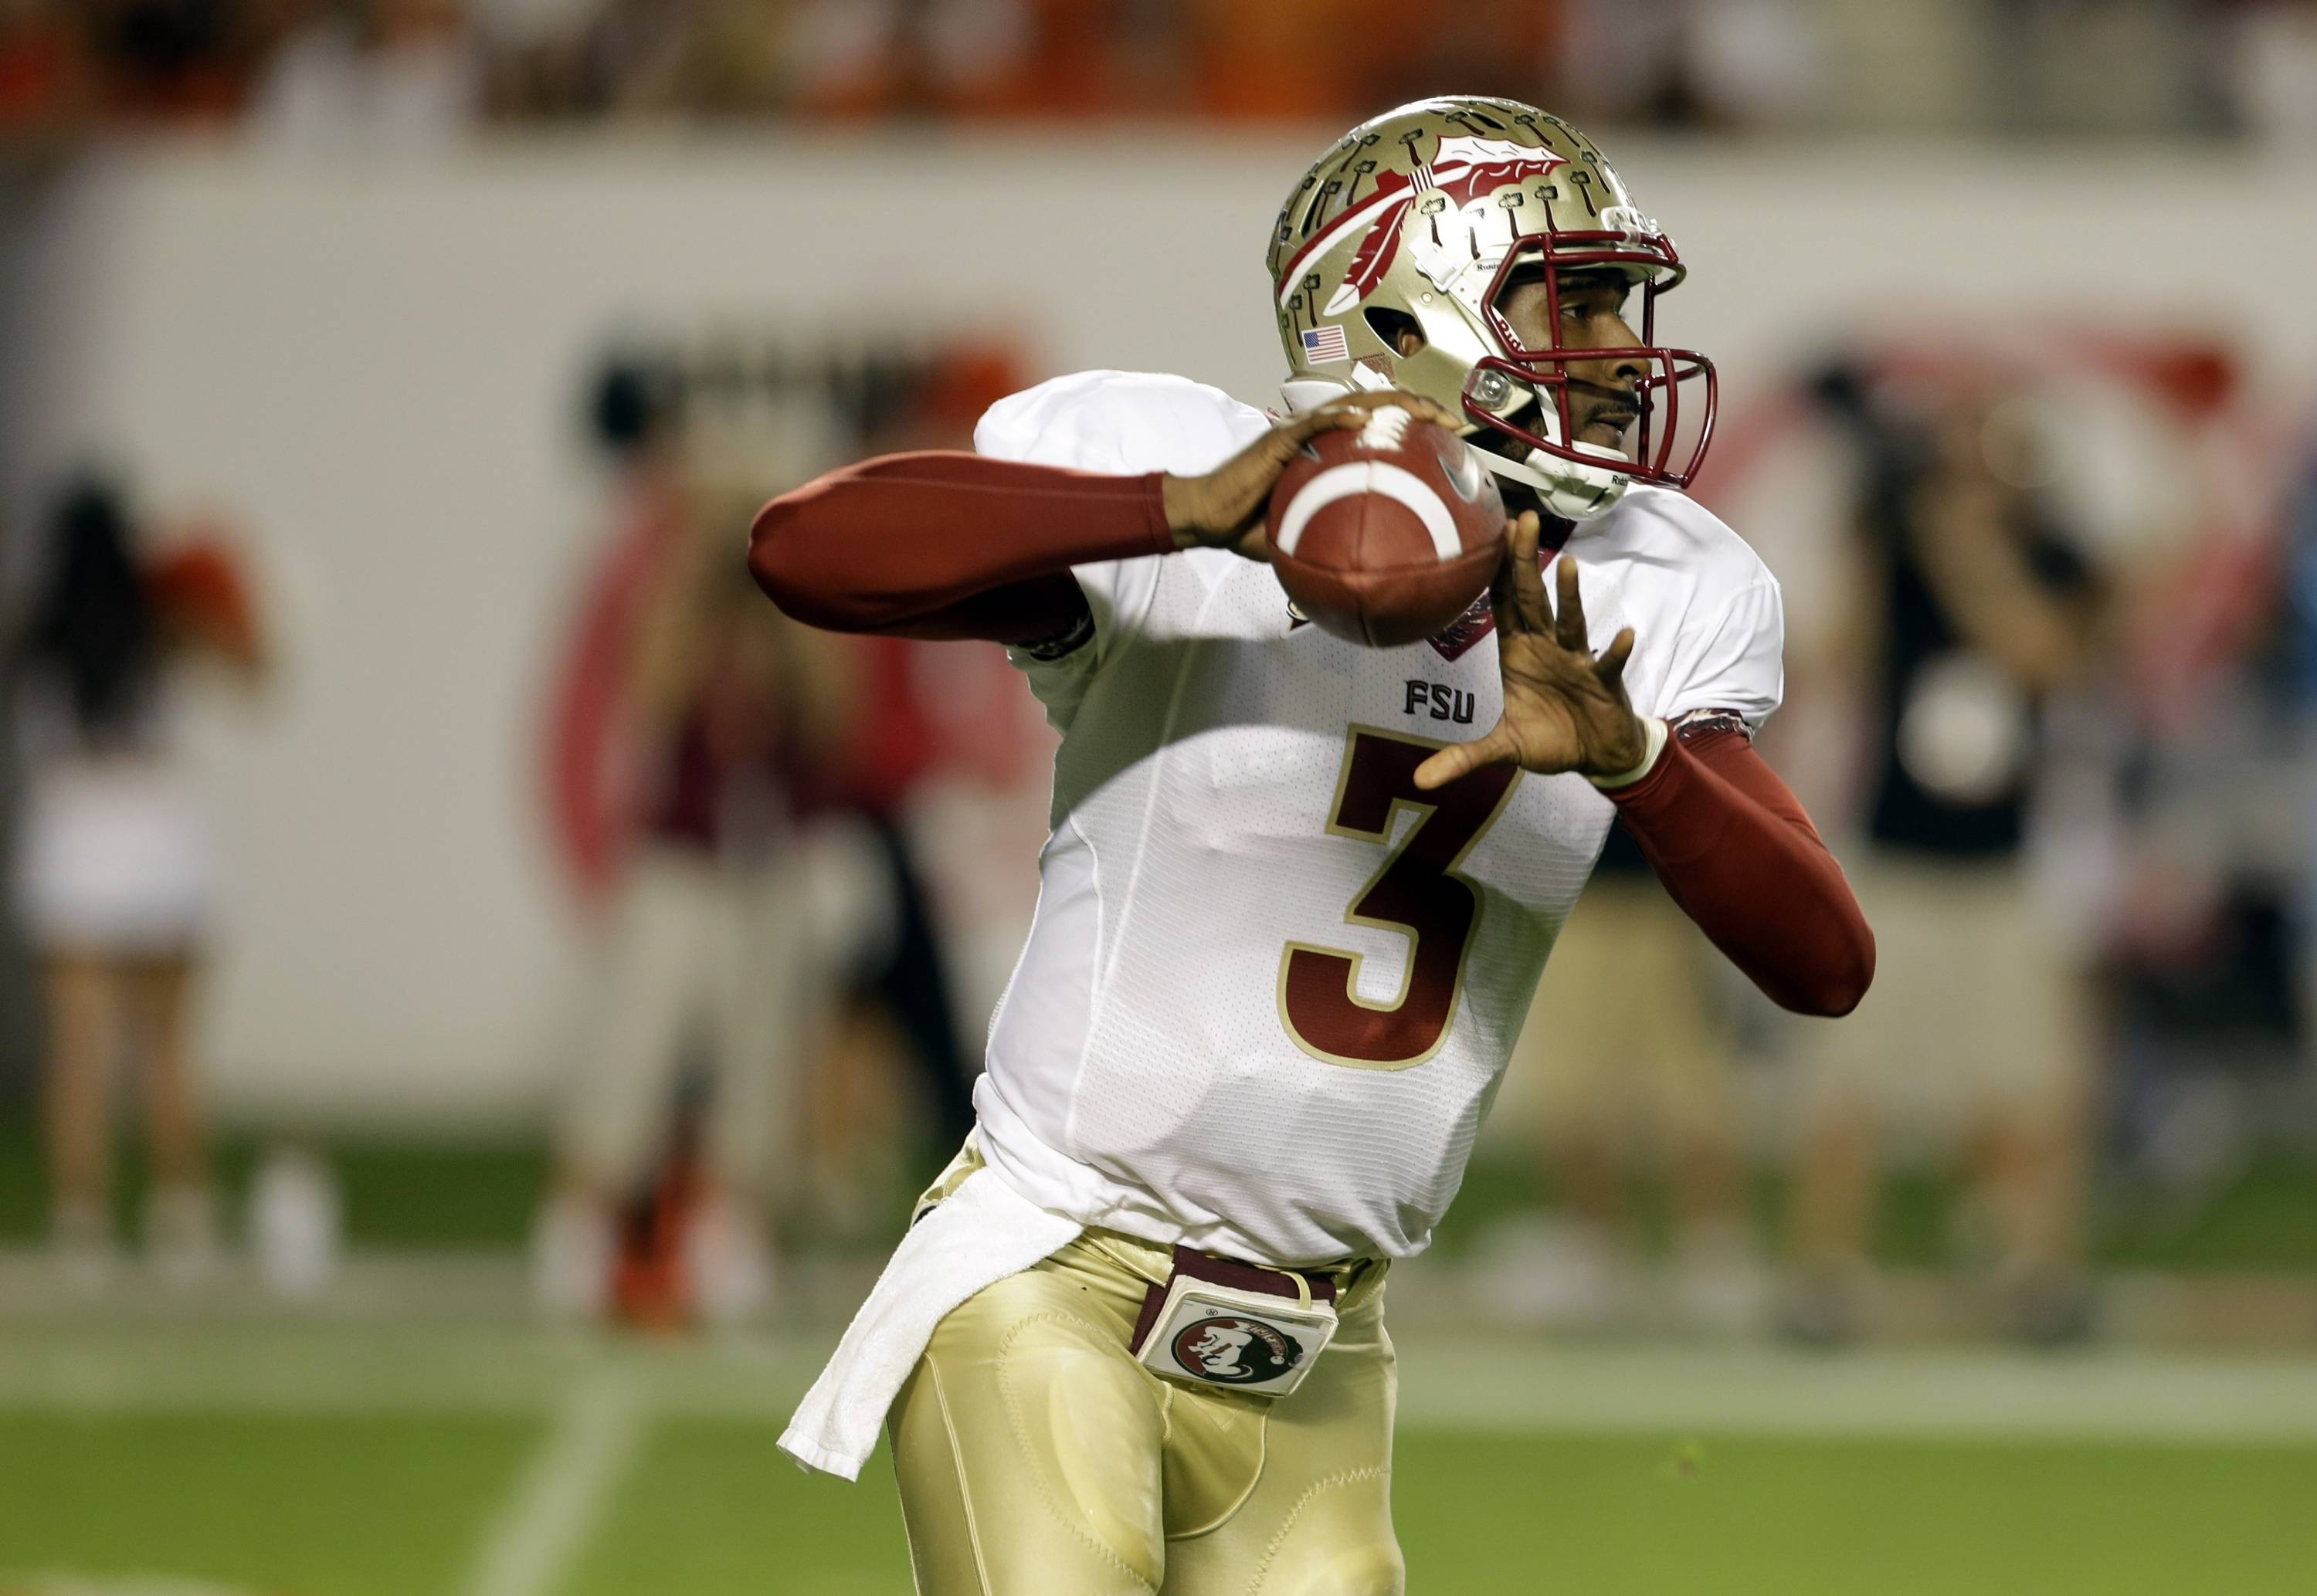 Florida State quarterback EJ Manuel (3) stands back to pass during the first half of an NCAA college football game against Miami, Saturday, Oct. 20, 2012, in Miami. (AP Photo/Lynne Sladky)